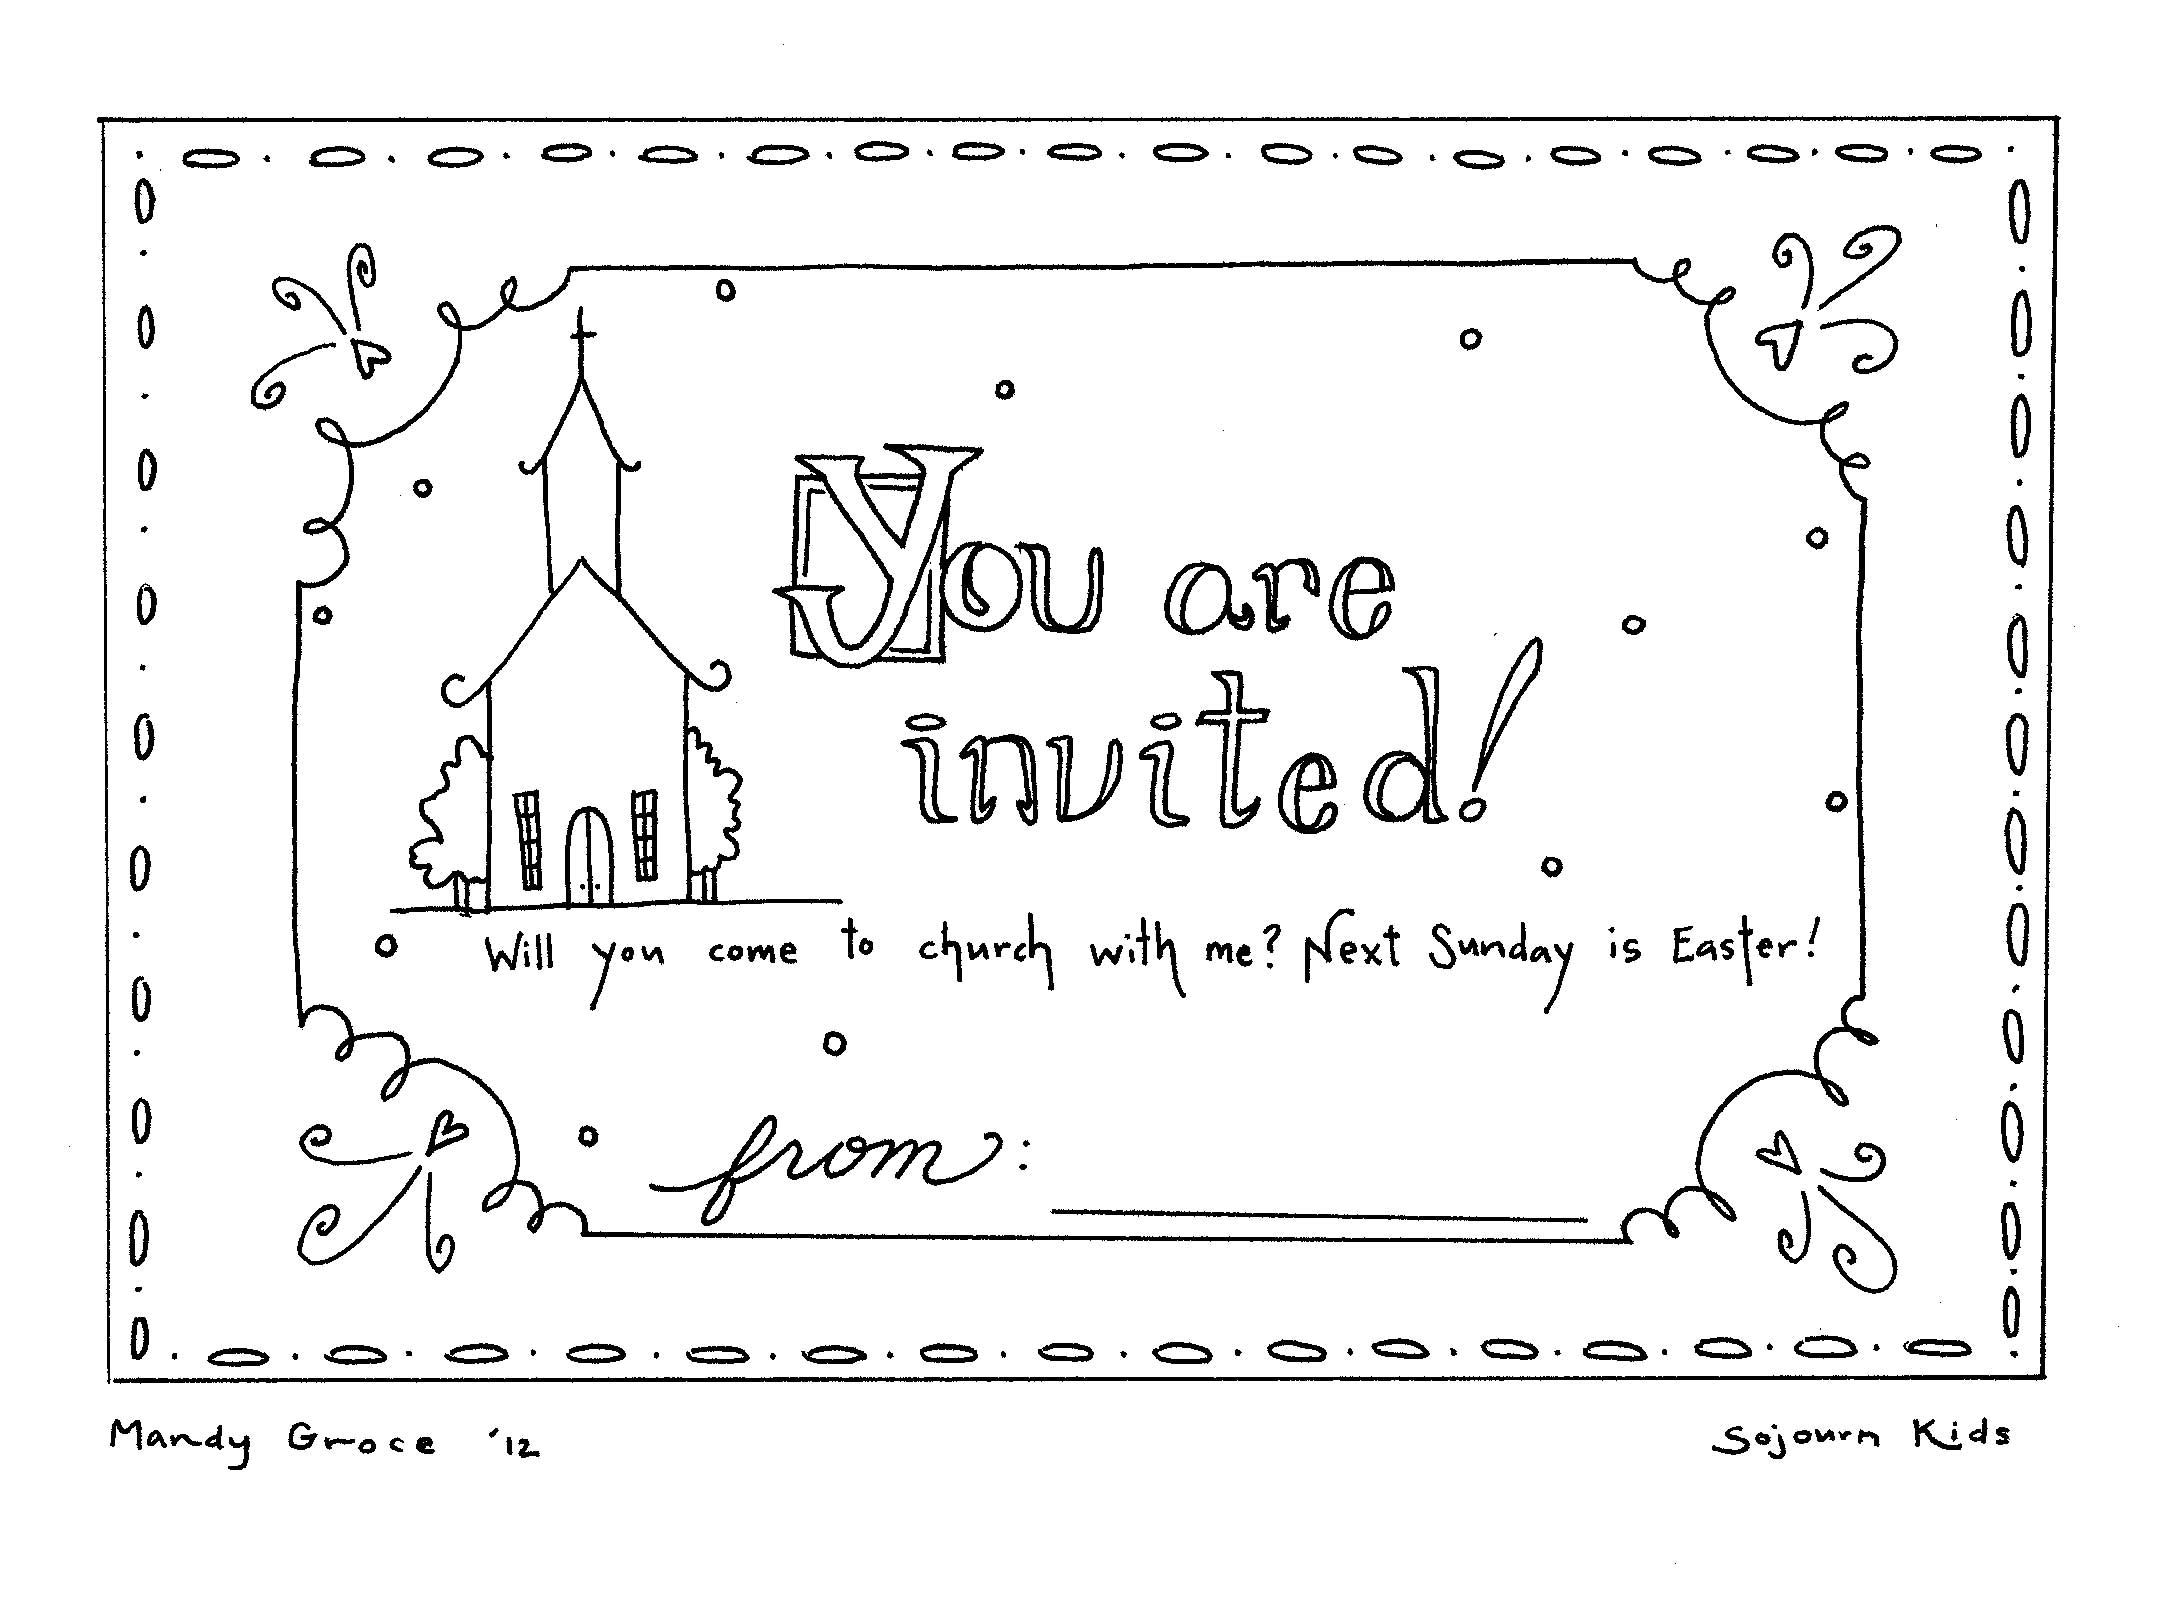 Easter Sunday Invitation Coloring Pages — SojournKids